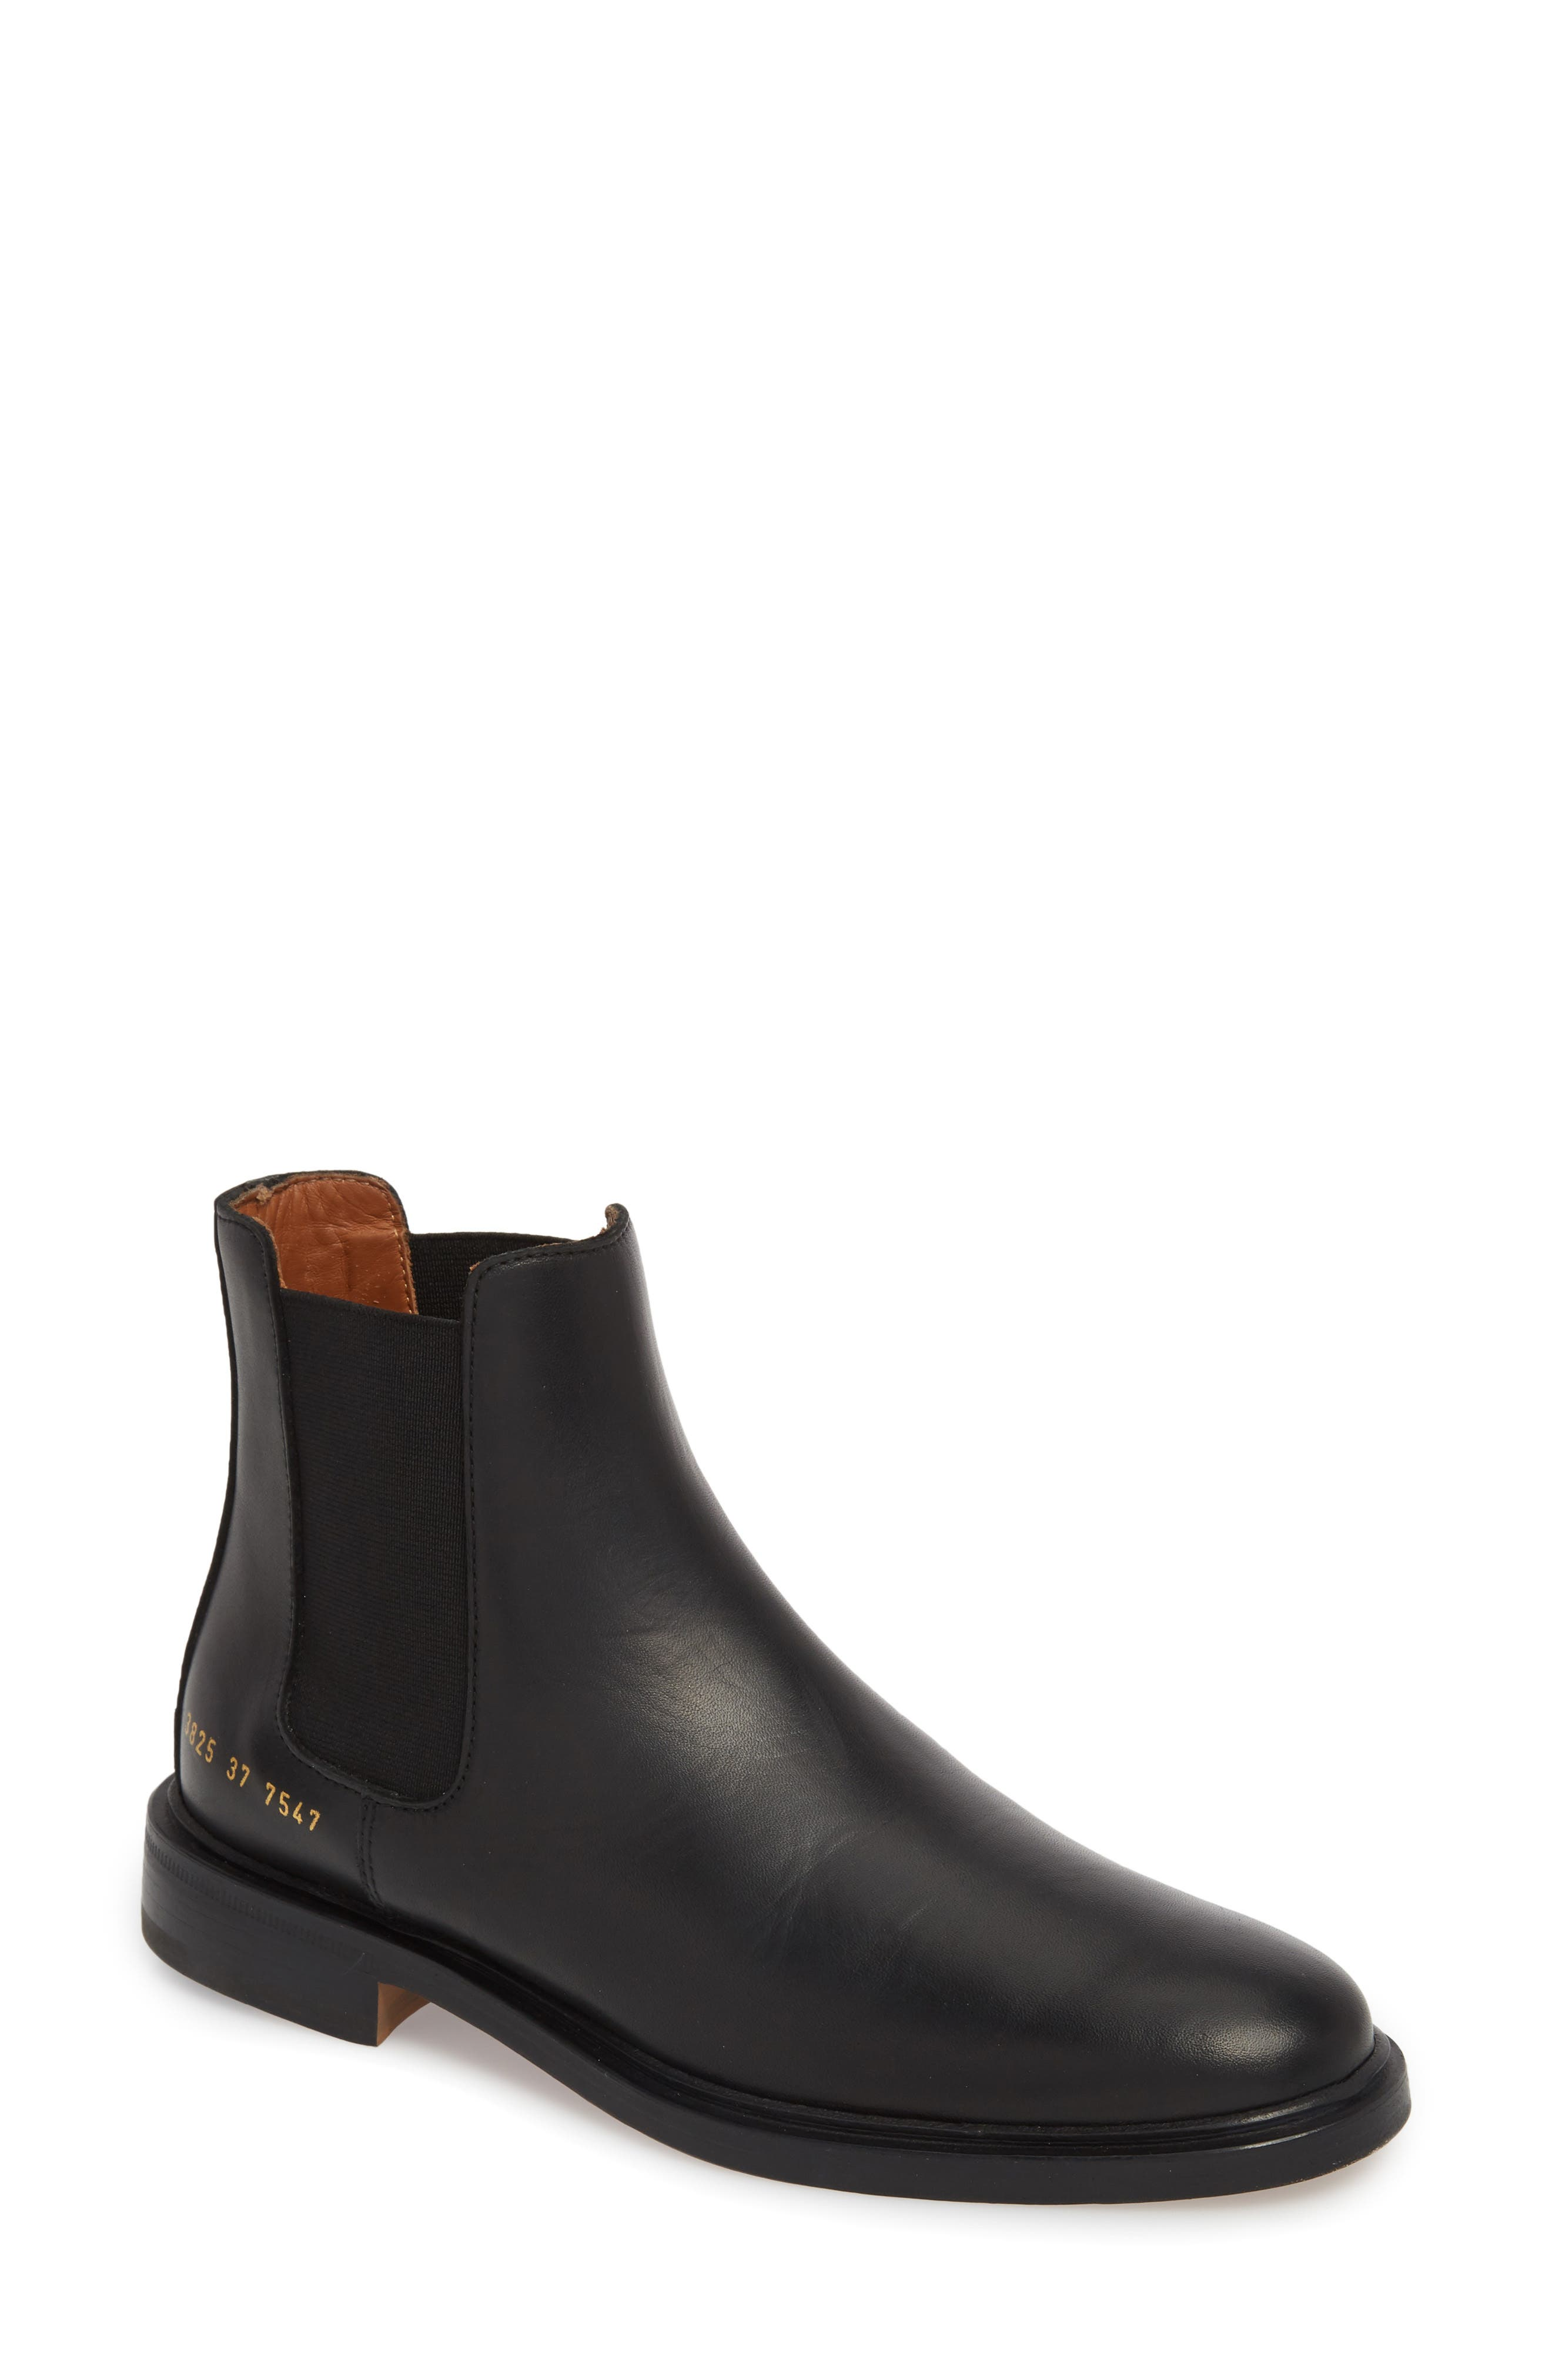 COMMON PROJECTS, Chelsea Boot, Main thumbnail 1, color, BLACK